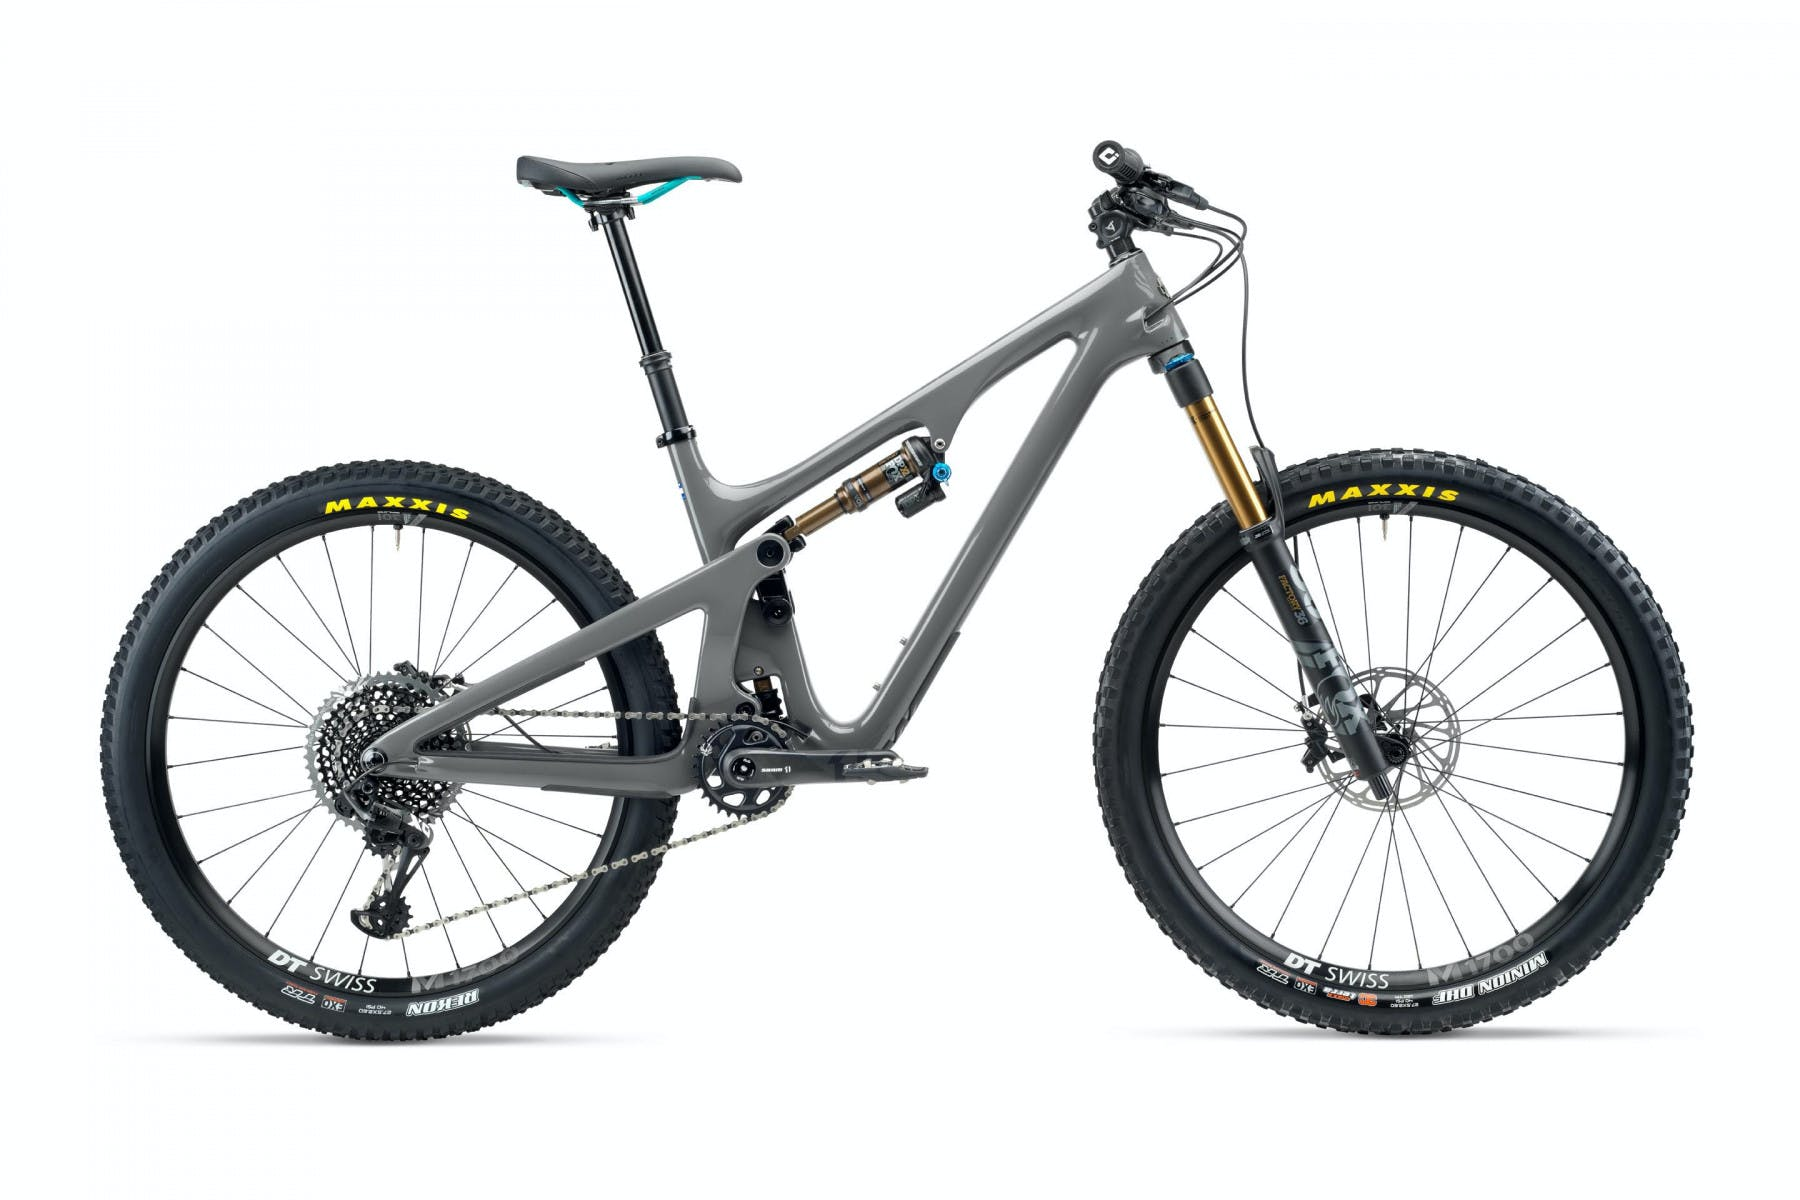 Yeti SB140 Carbon C2 Mountain Bike